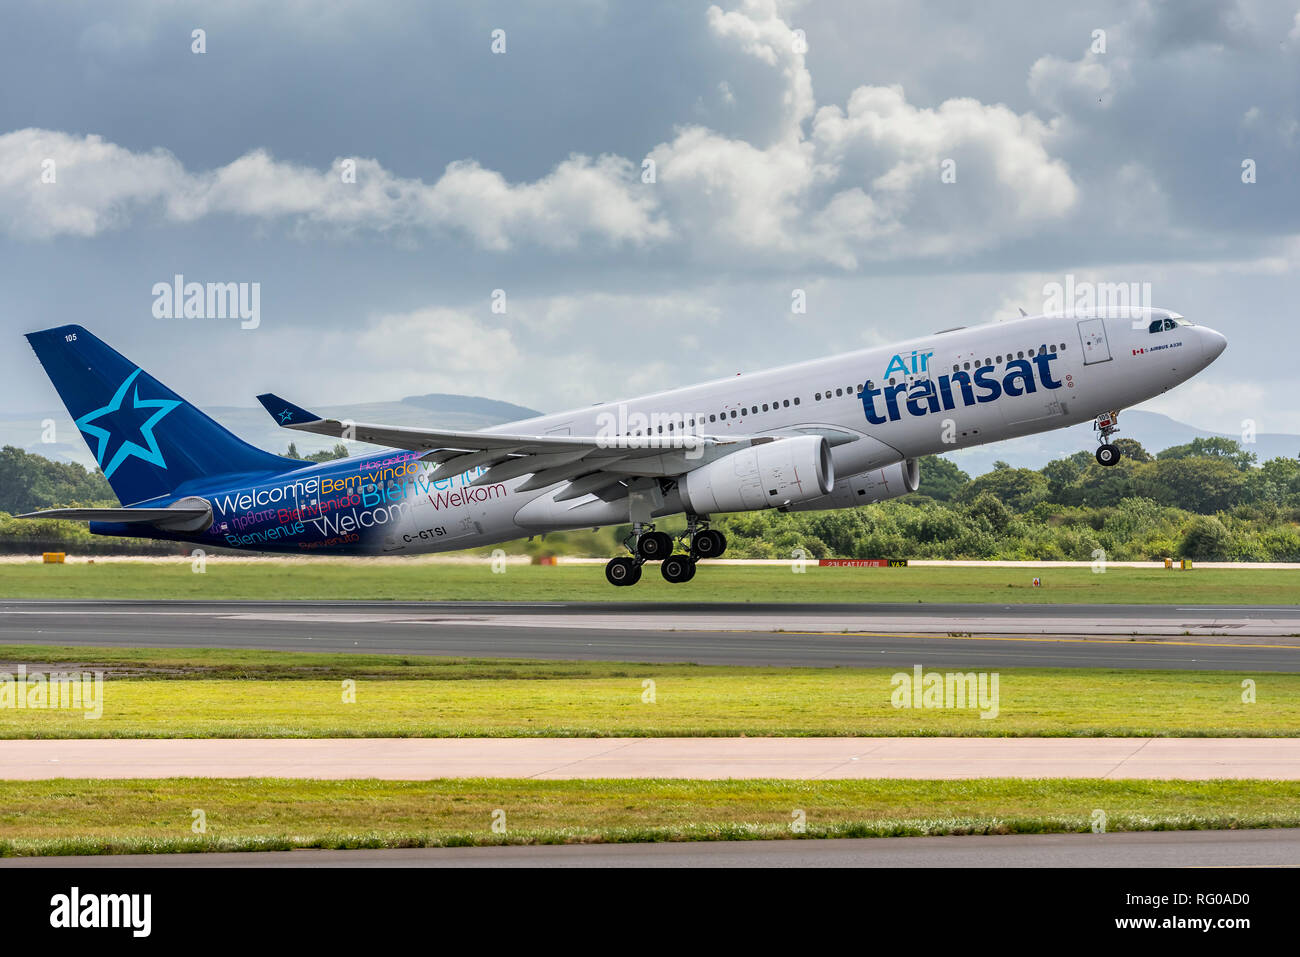 Air TRansat Airbus A330. - Stock Image